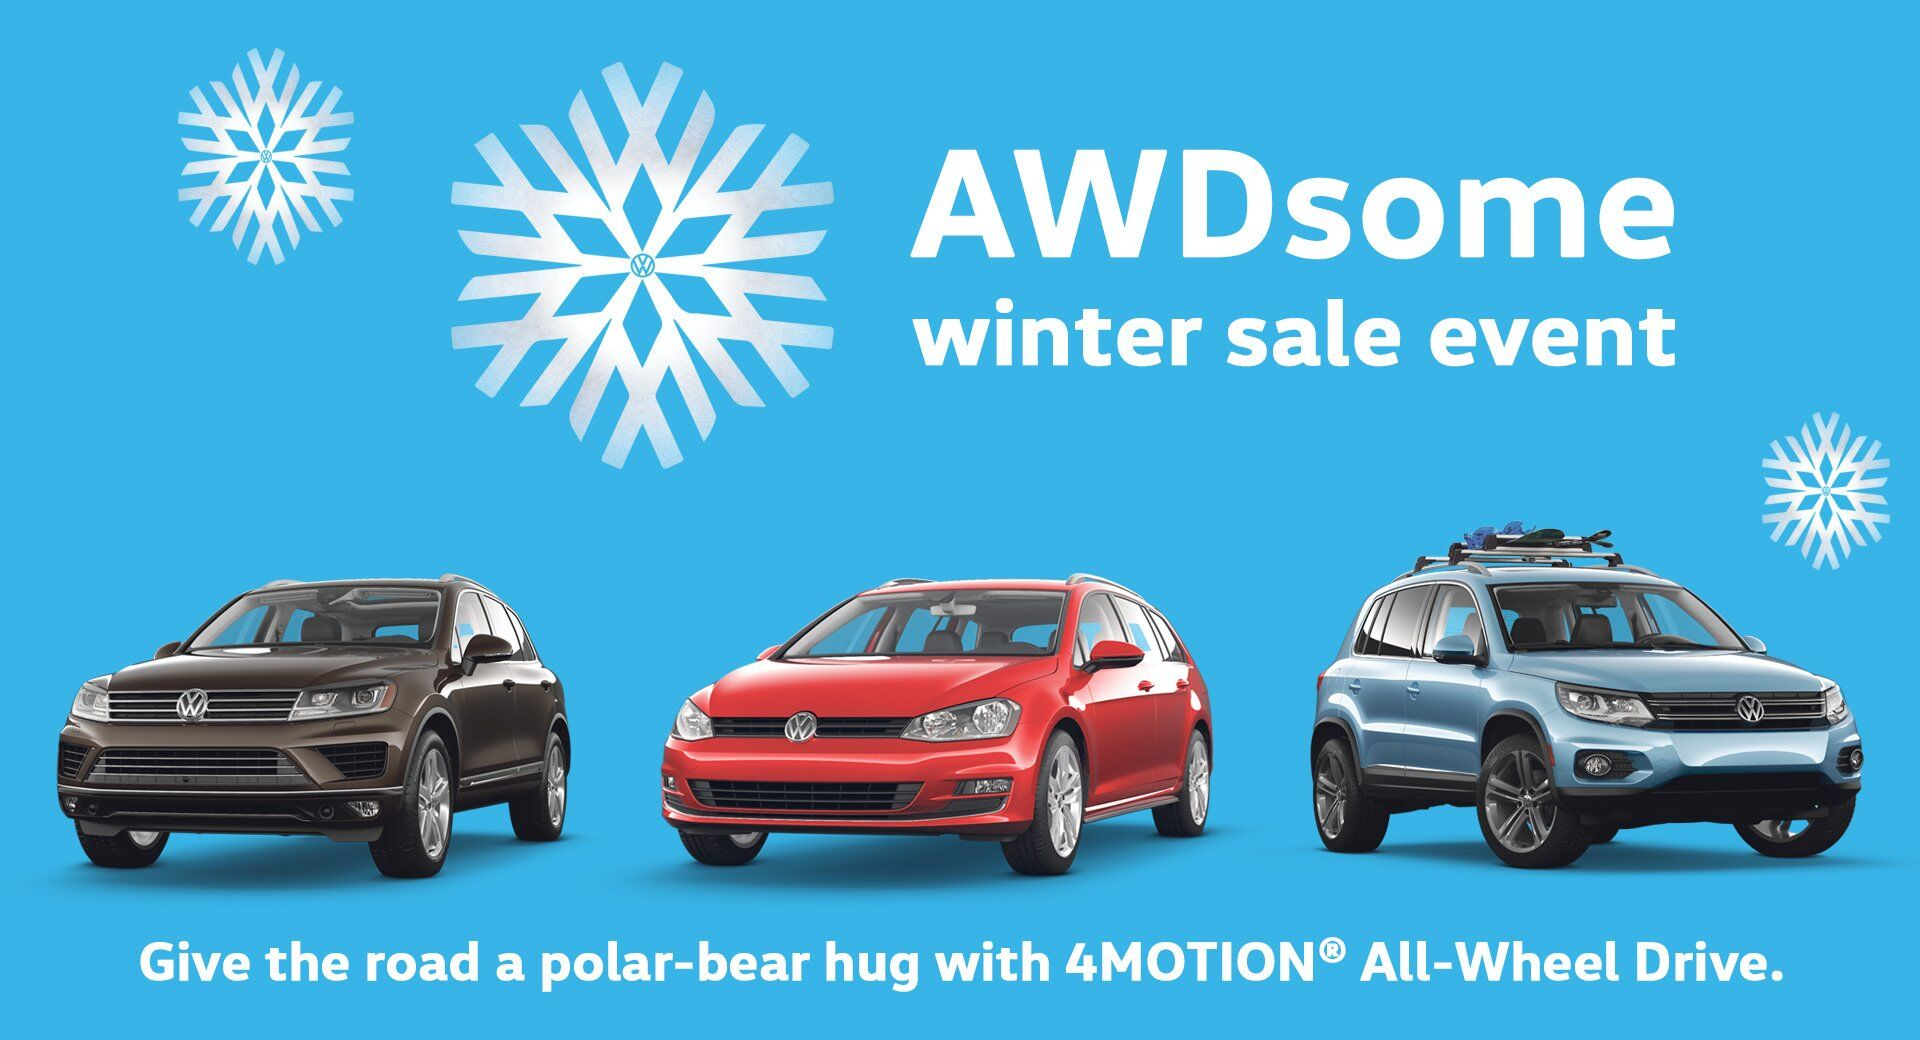 VW AWDsome Winter Sale